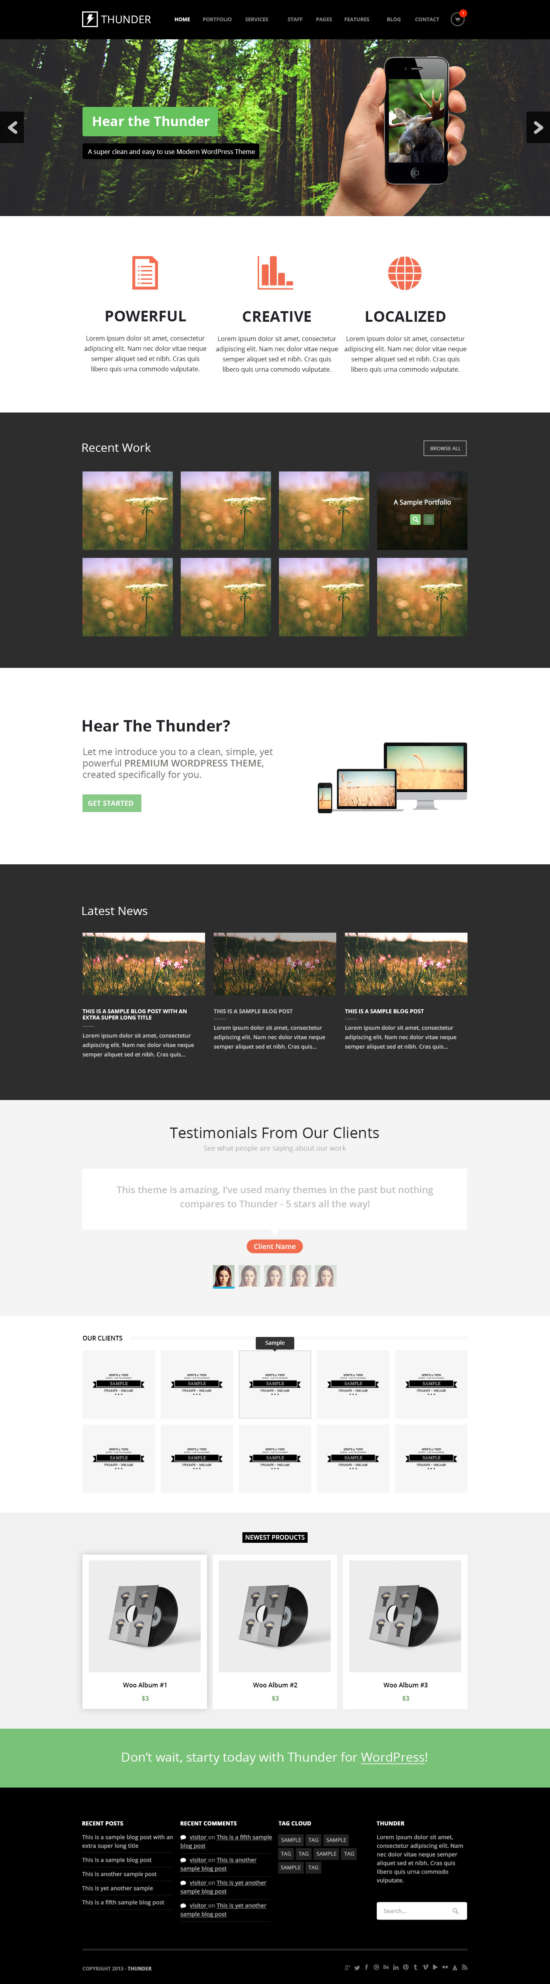 thunder_wordpress_theme_free_homepage_template_psd